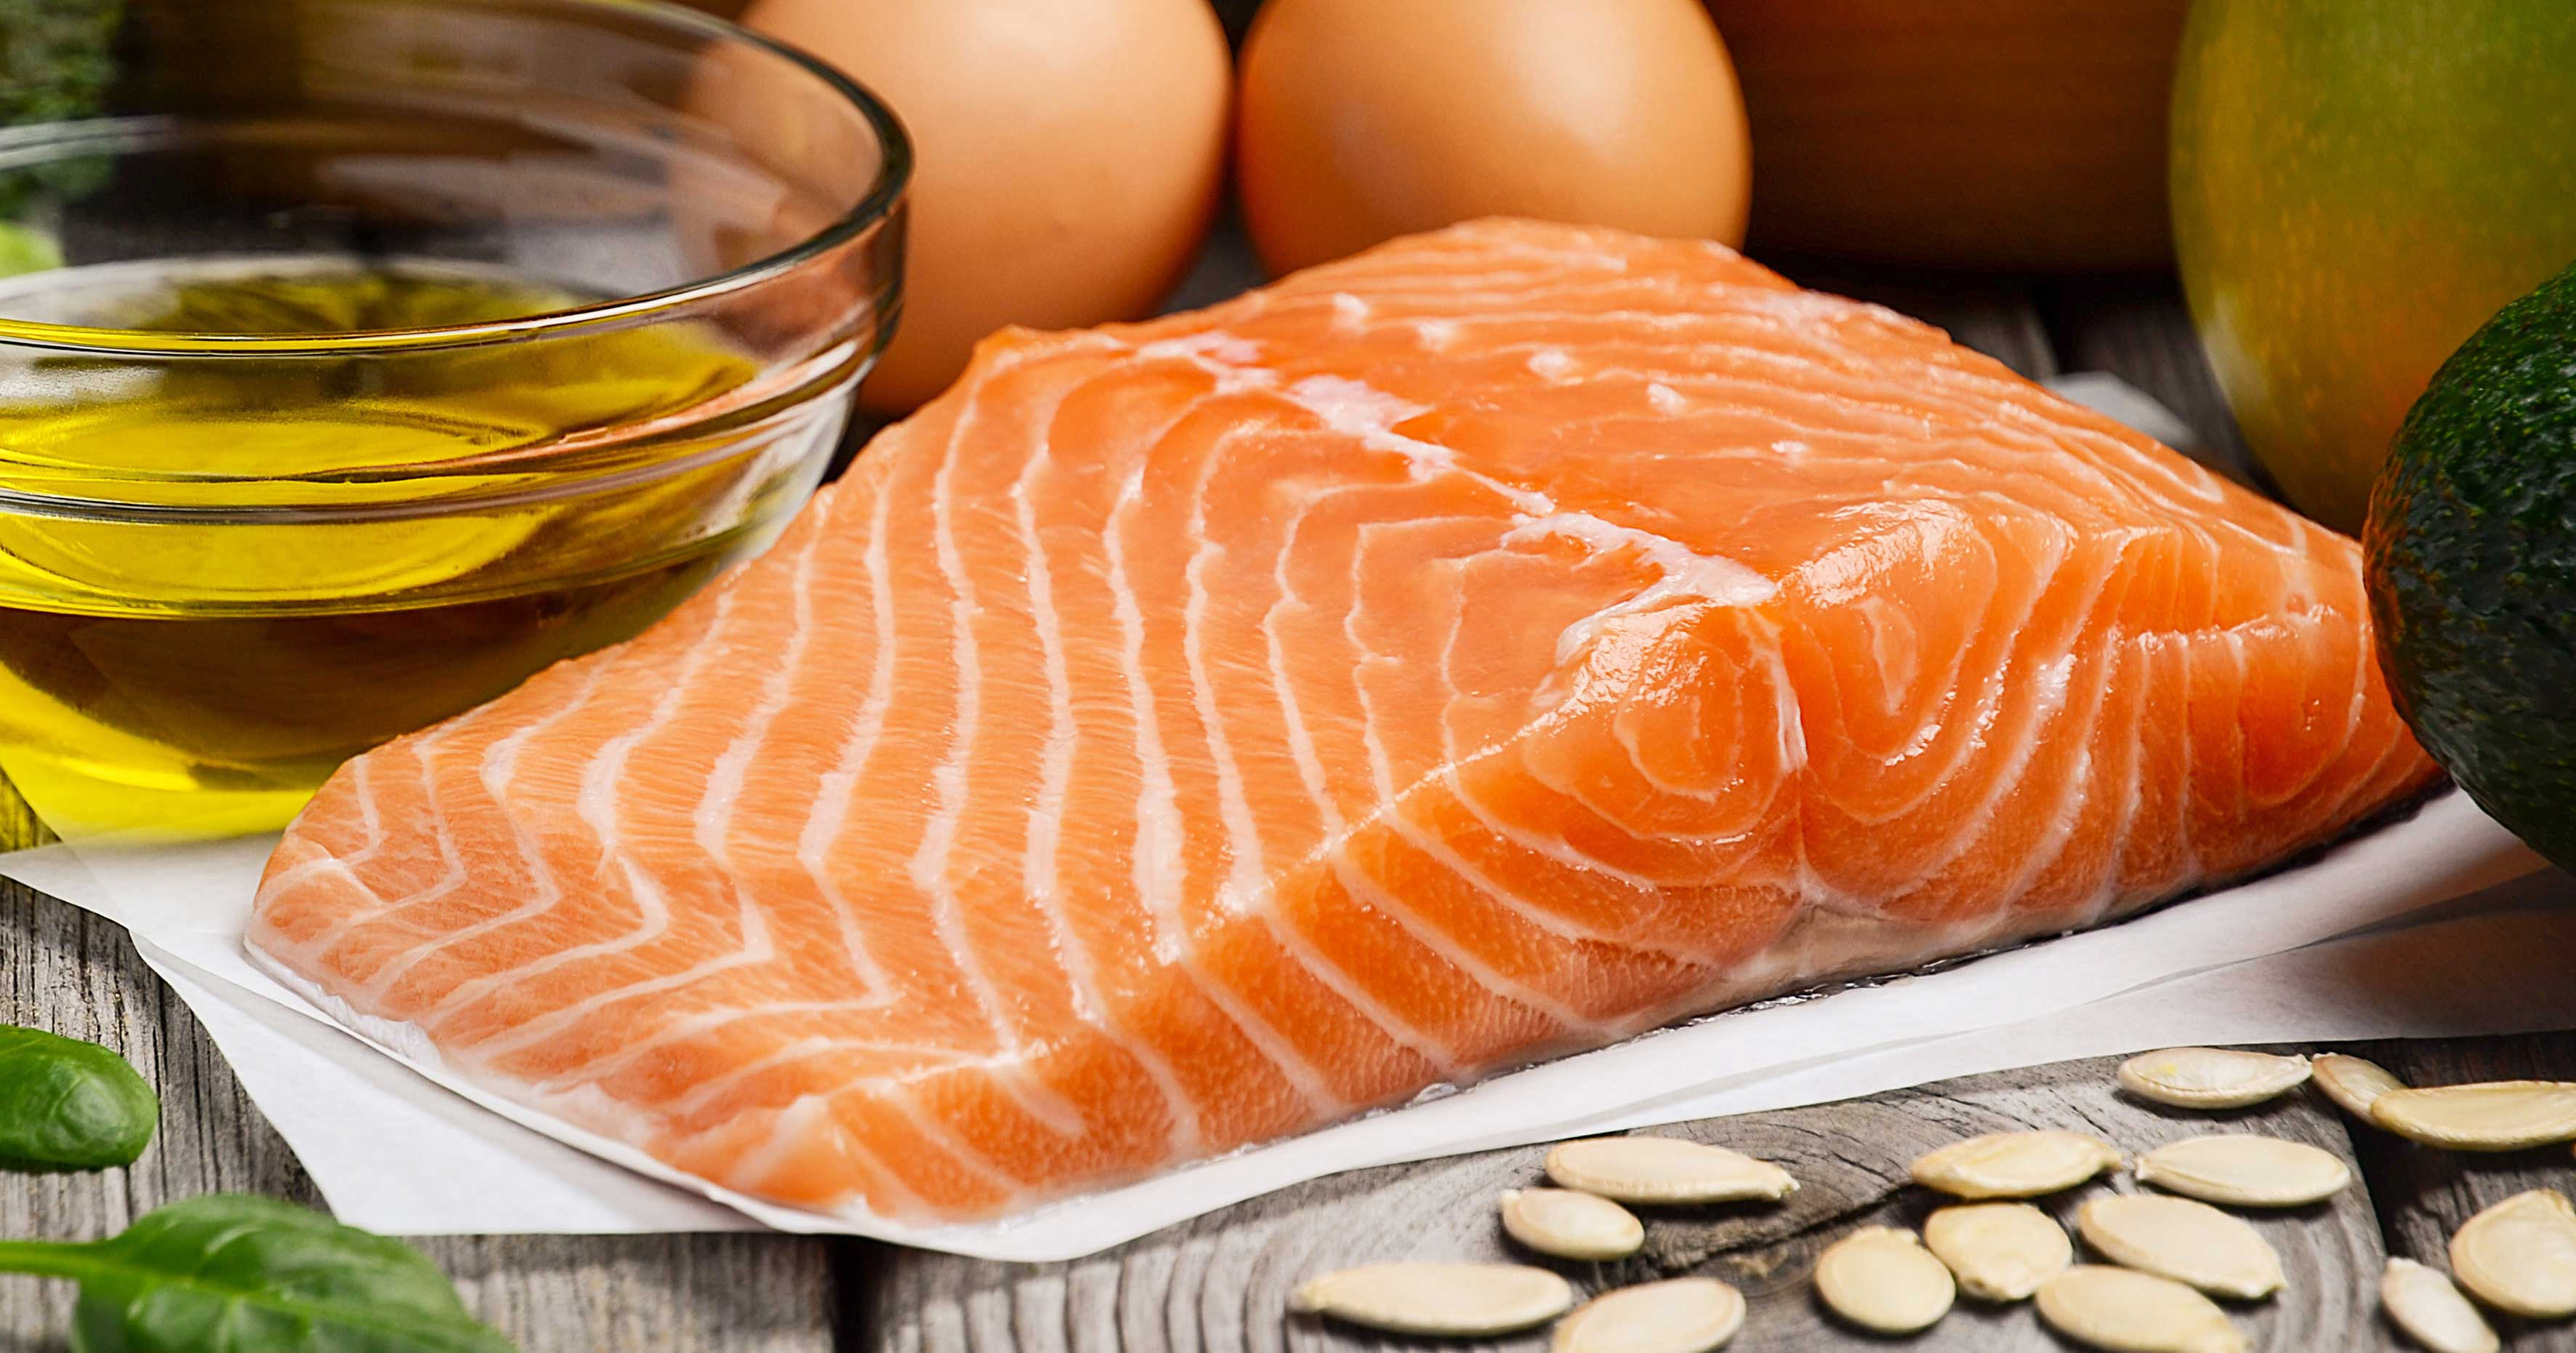 Food Photography of Salmon Near Oil Bottle and Eggs | Diamond Pet Foods